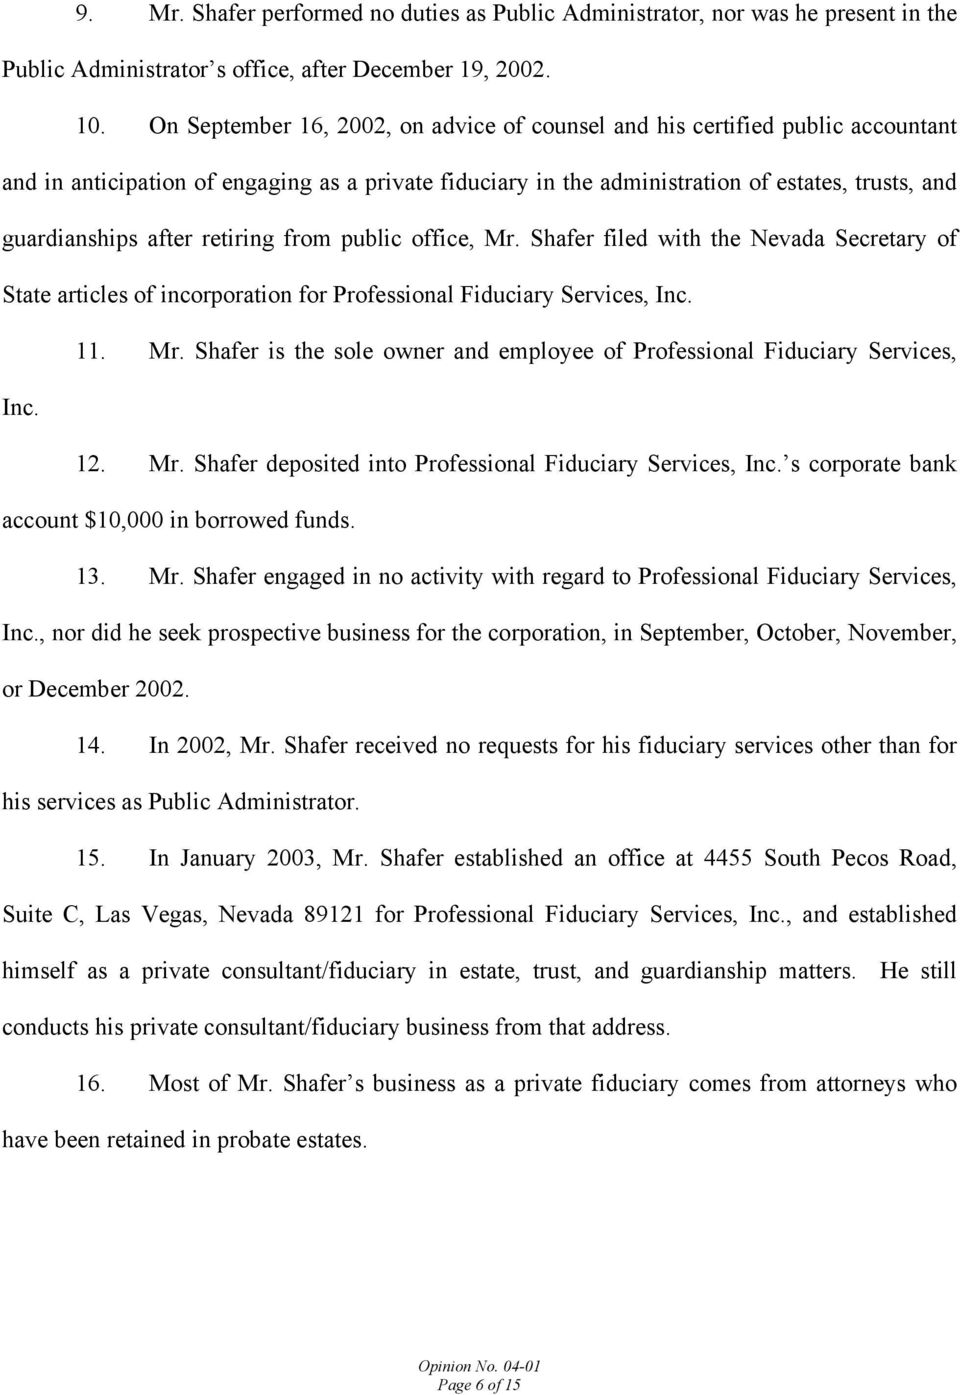 after retiring from public office, Mr. Shafer filed with the Nevada Secretary of State articles of incorporation for Professional Fiduciary Services, Inc. 11. Mr. Shafer is the sole owner and employee of Professional Fiduciary Services, Inc.